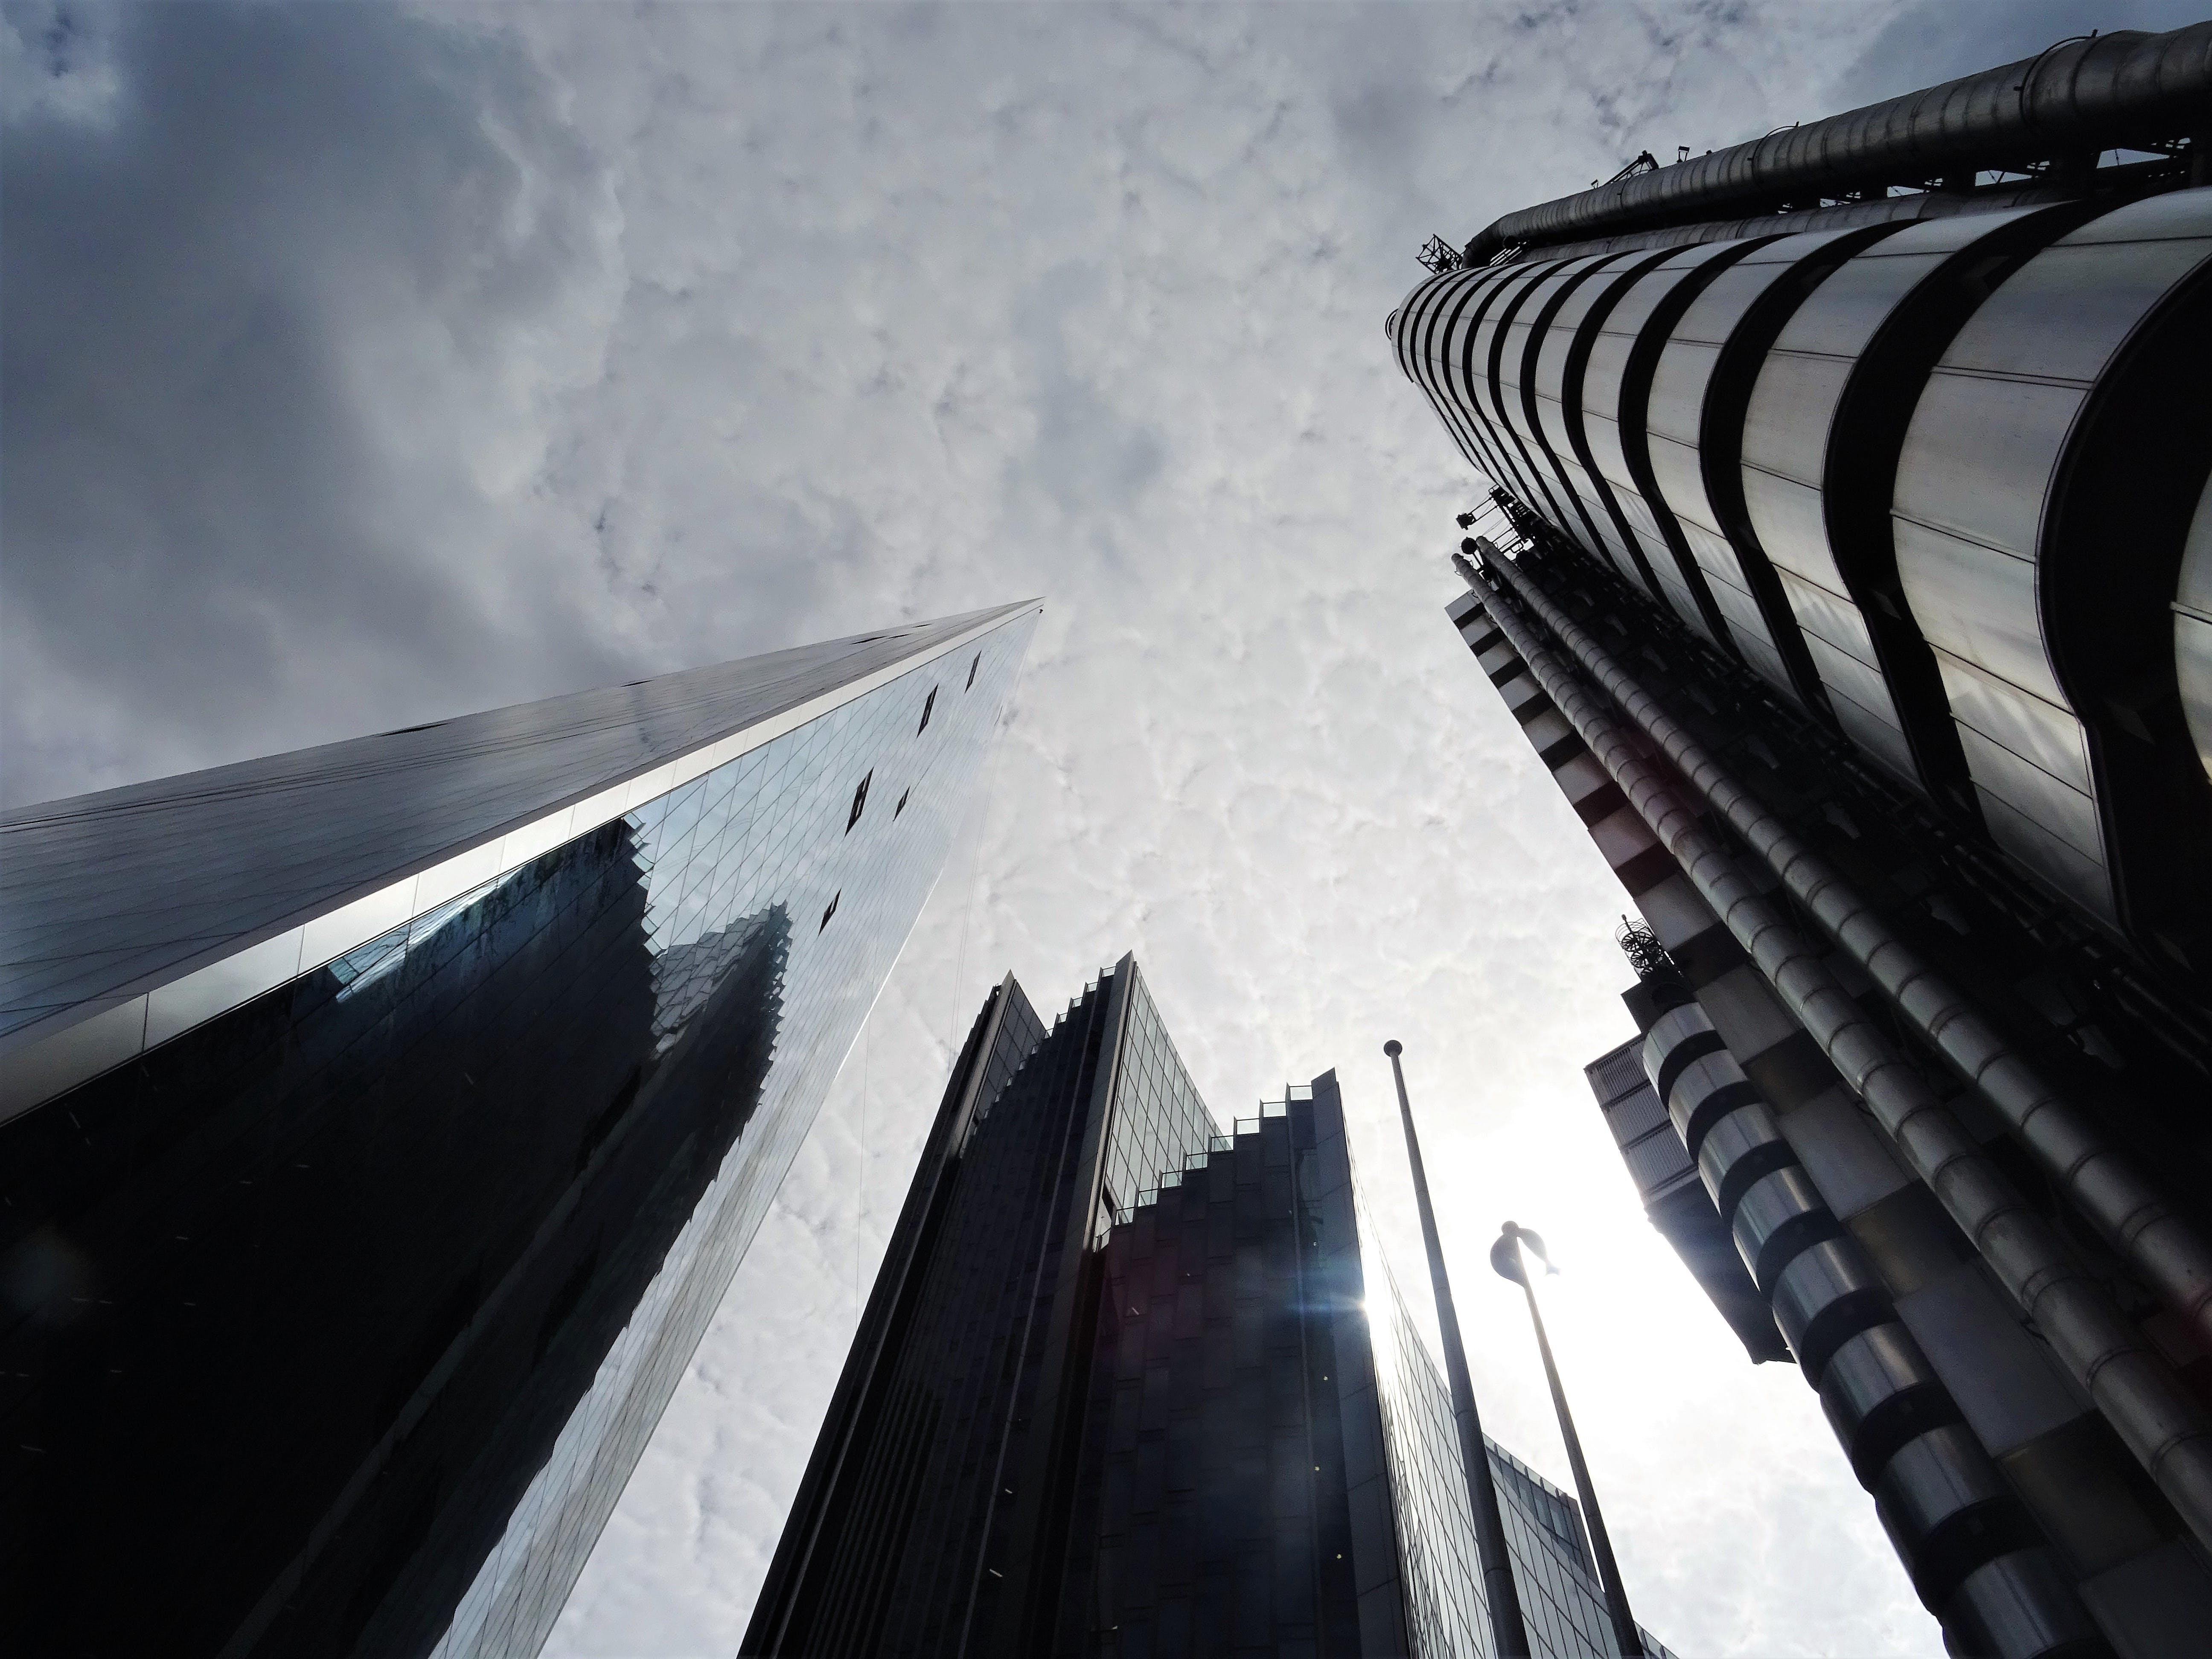 Low Angle Photo of High-rise Building over Cloudy Sky